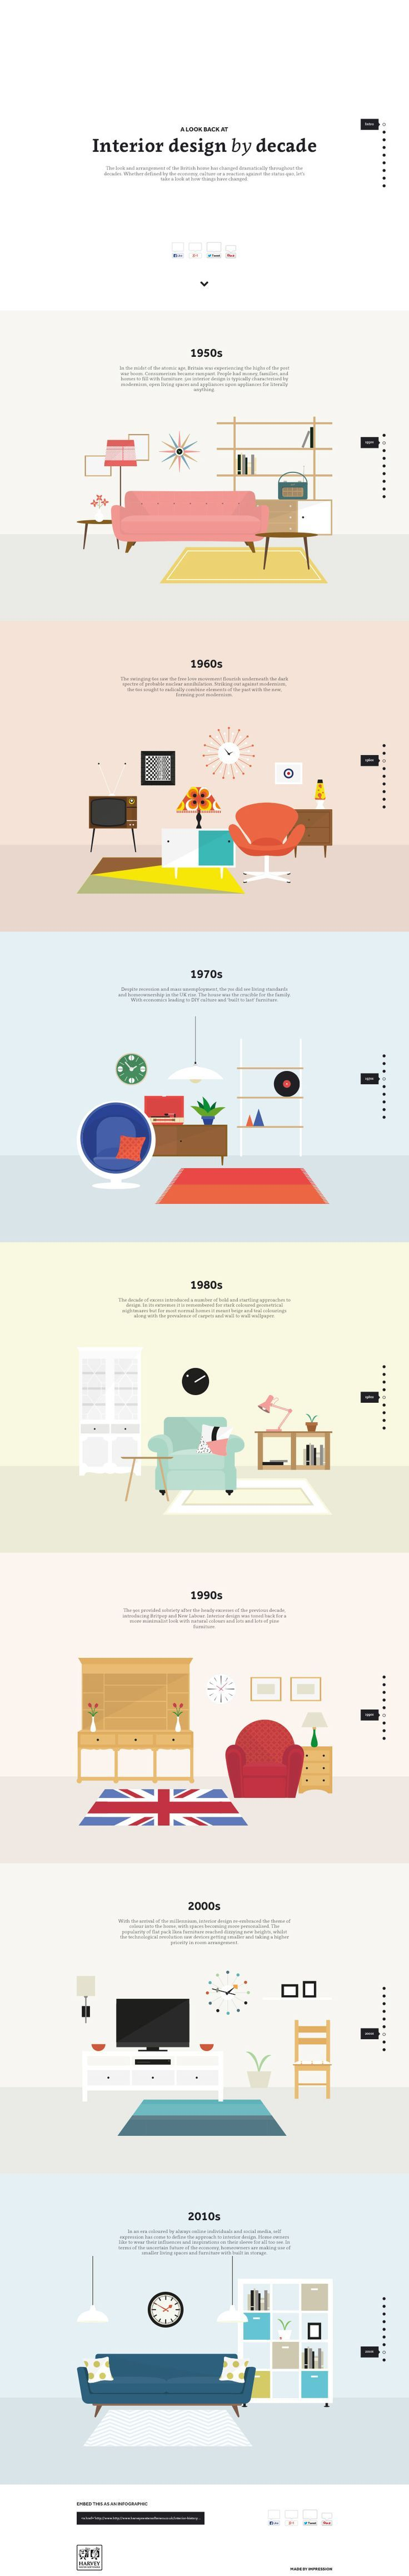 Interior Design | Tipsögraphic | More interior design tips at http://www.tipsographic.com/: